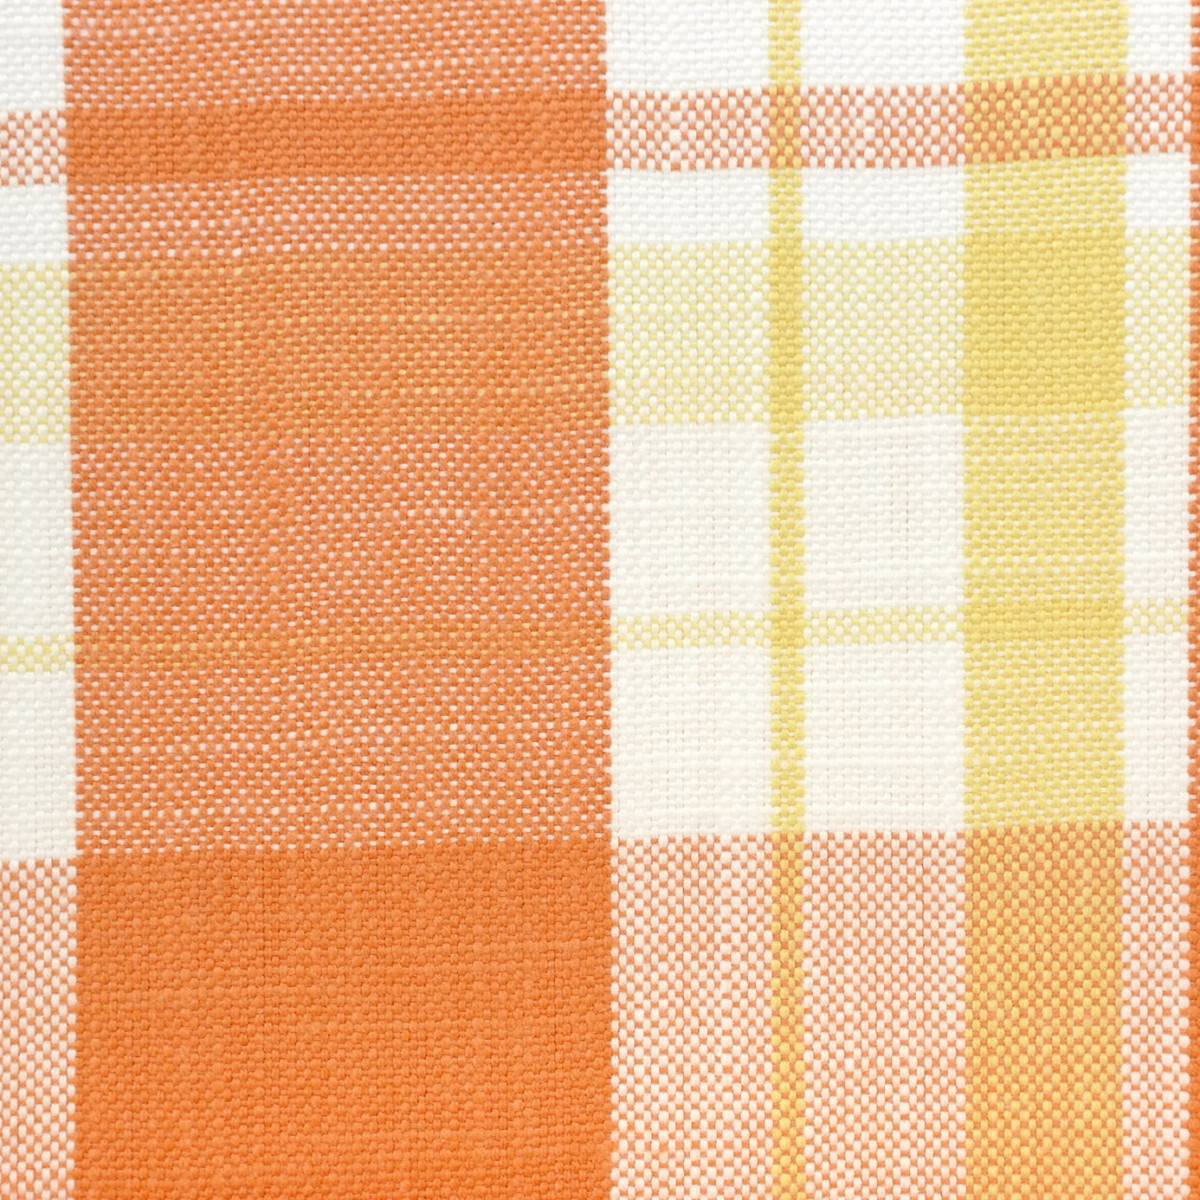 Curtains in kingsbury check fabric kelling 2109 02 for Kelling designs